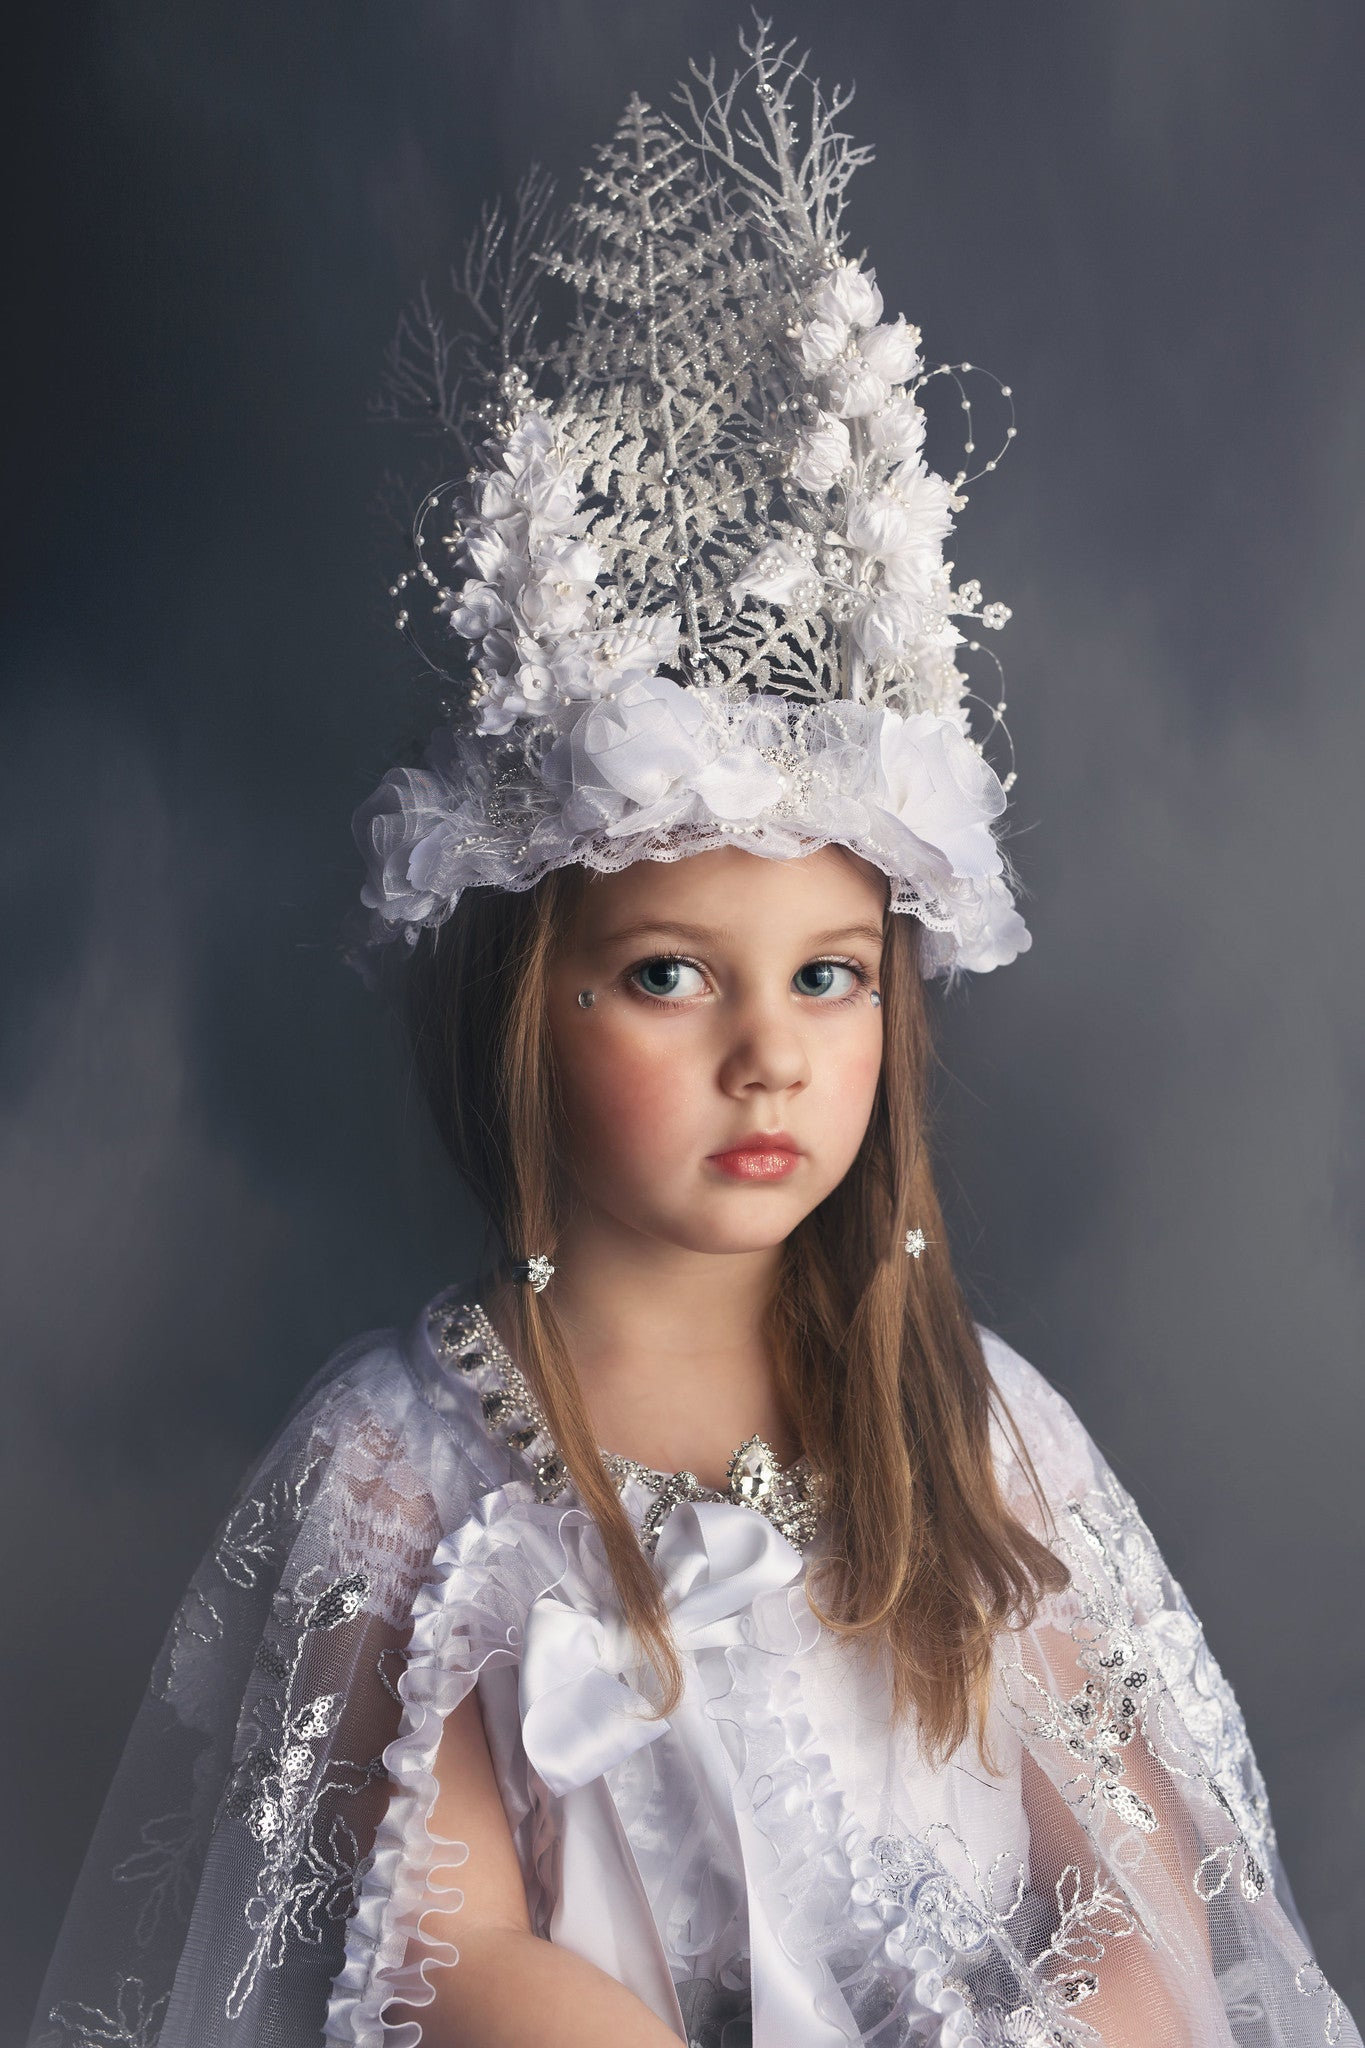 """Snowflake Queen""... An Extravagant Couture Crown"